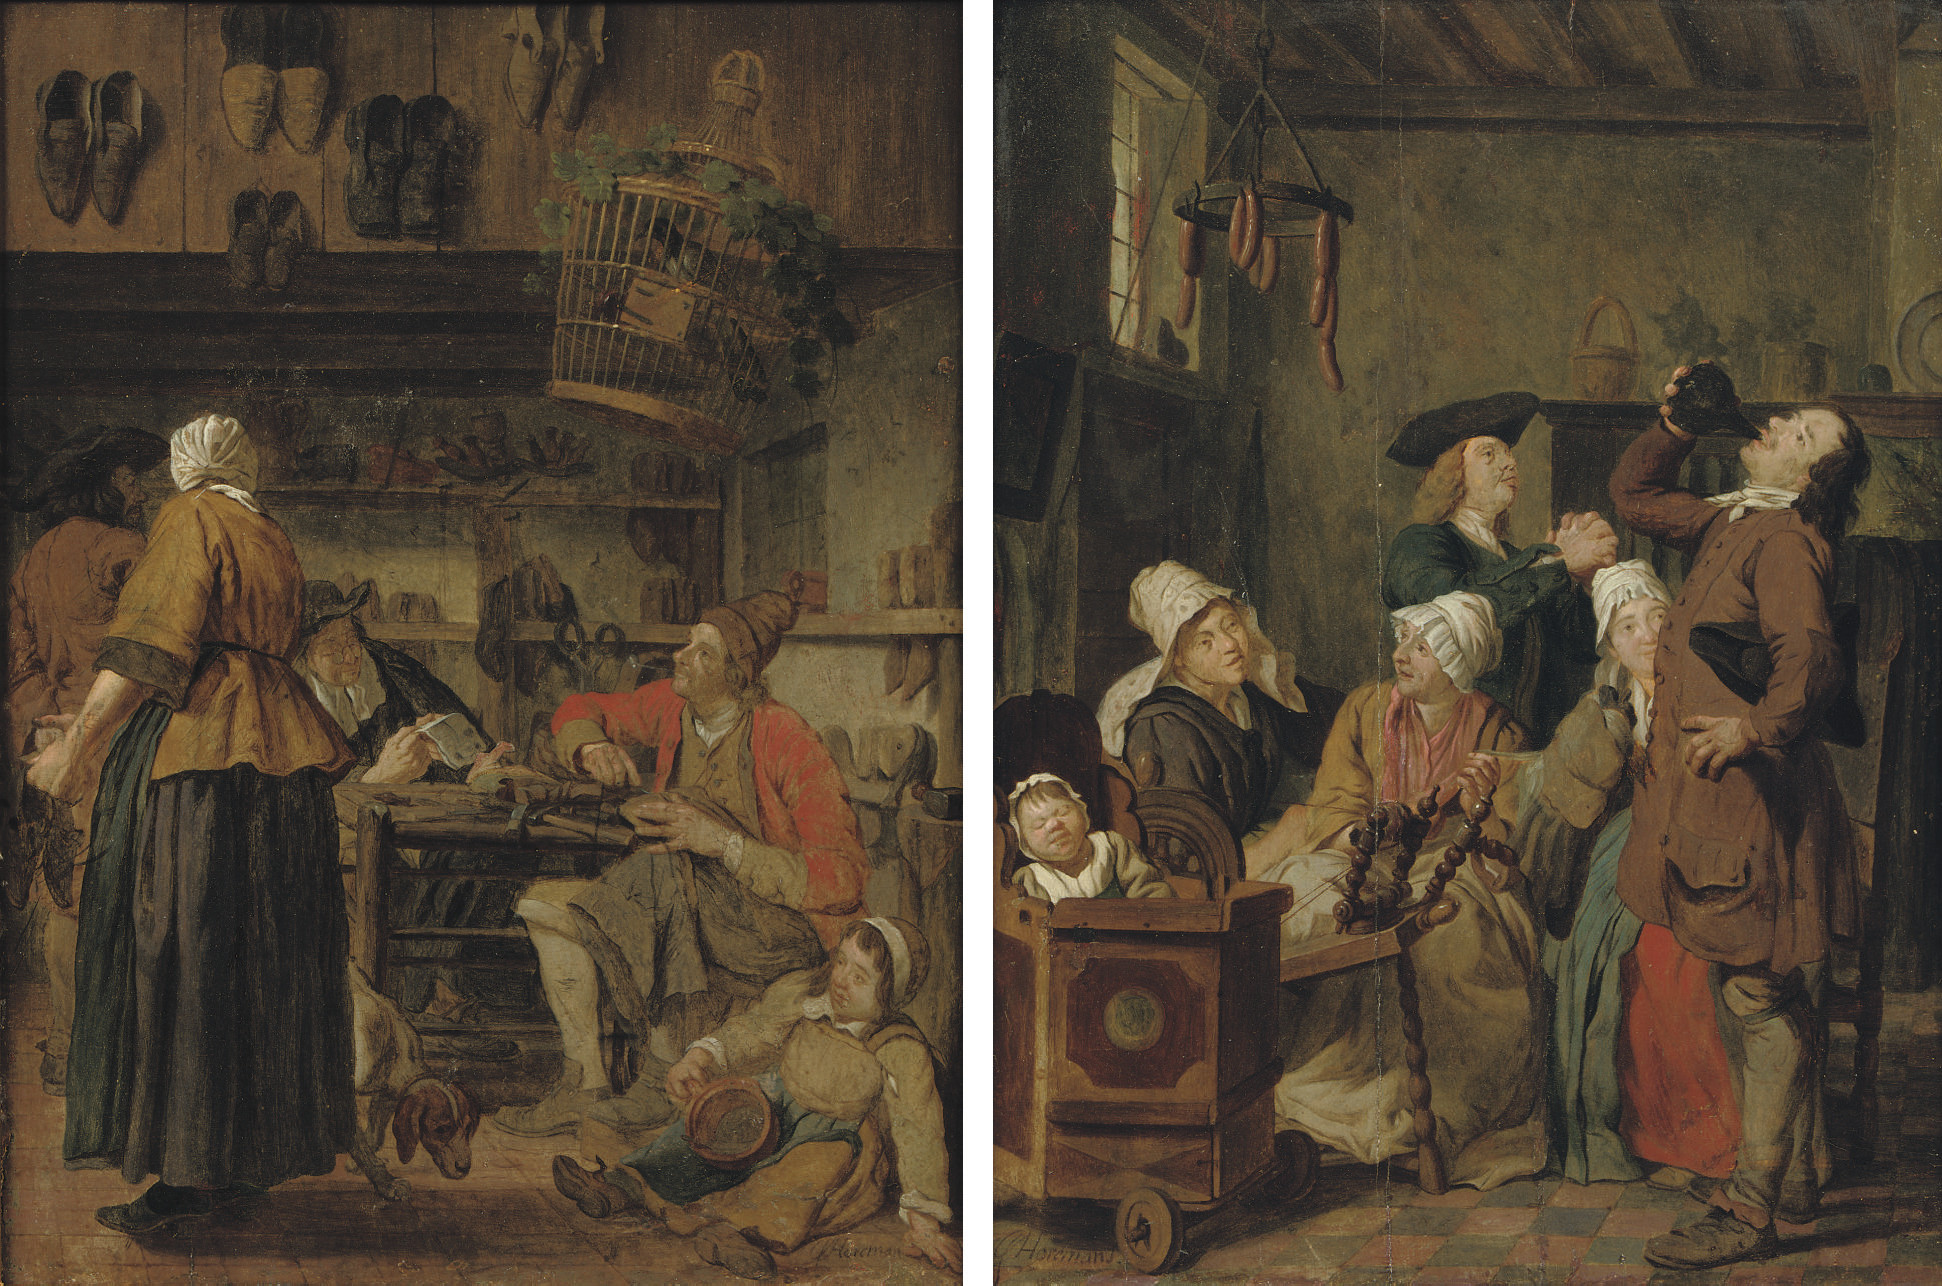 A cobbler's workshop; and A family in an interior